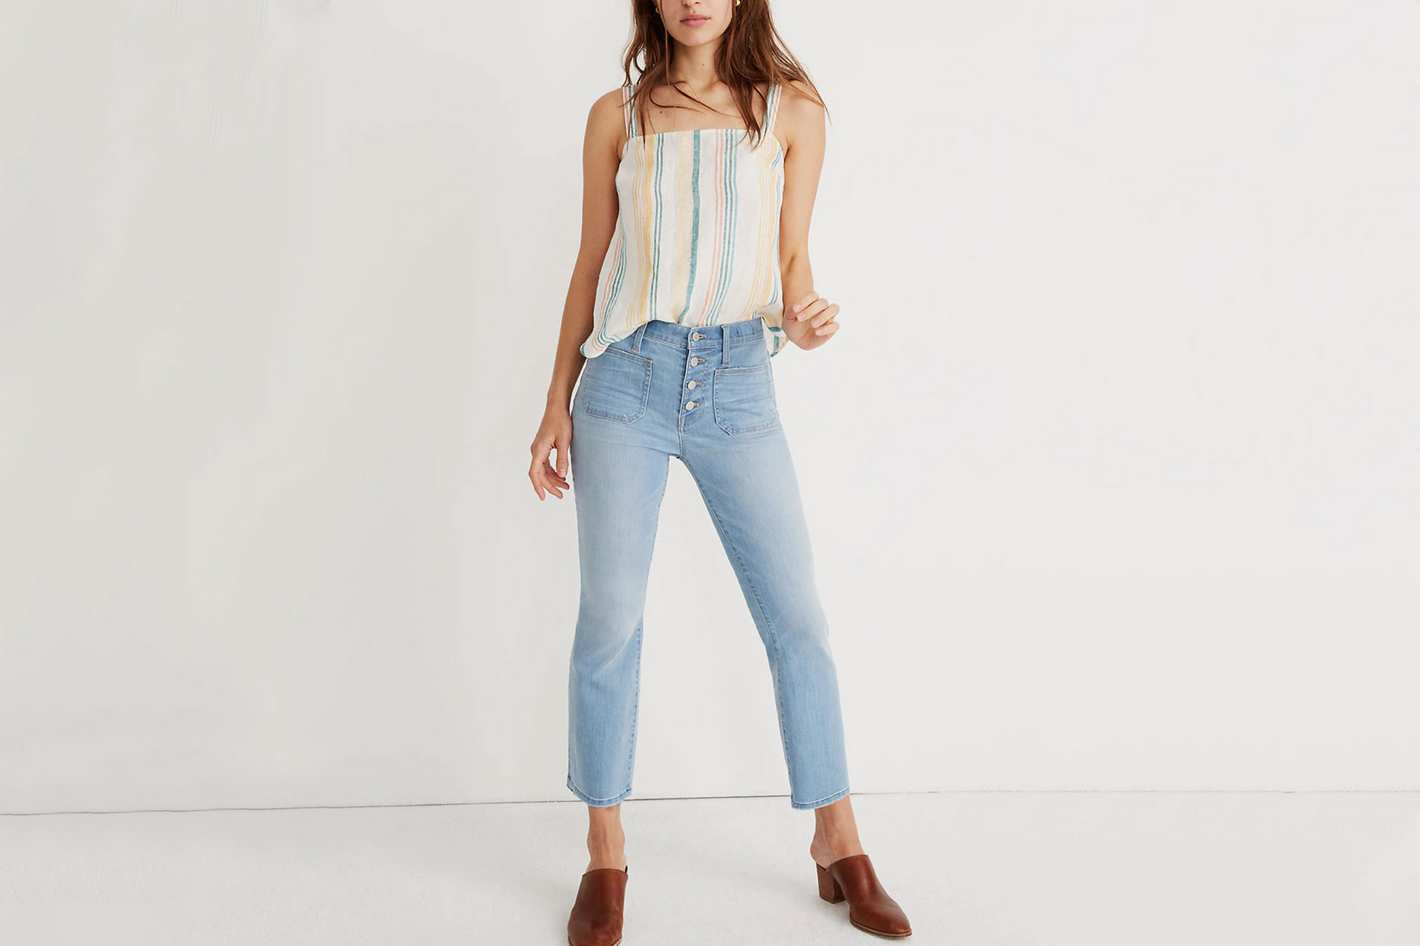 b52445c1caa35 Madewell Cali Demi-Boot Jeans in Quince Wash: Button-Front Edition